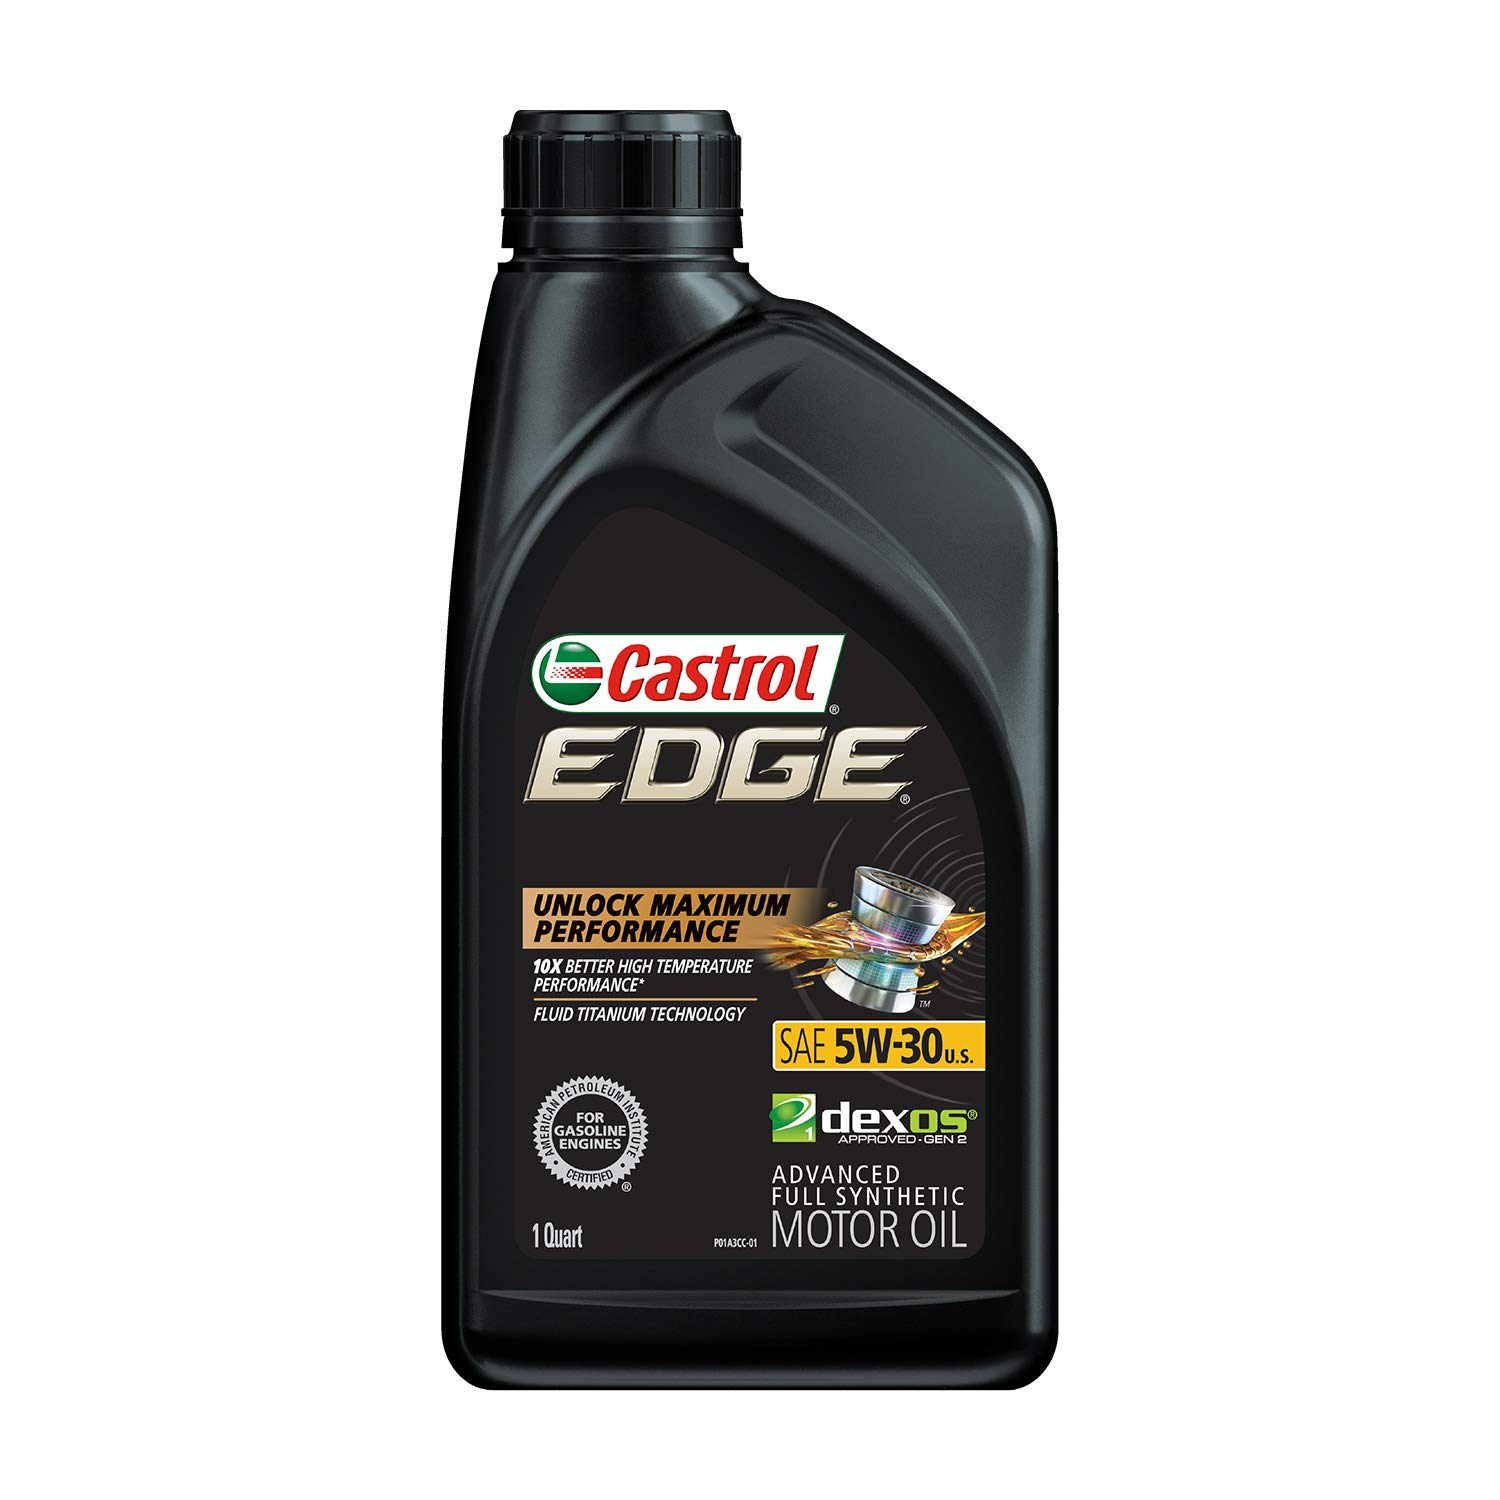 Castrol 06248 Edge 5W-30 Advanced Full Synthetic Motor Oil, 1 Quart, 6 Pack